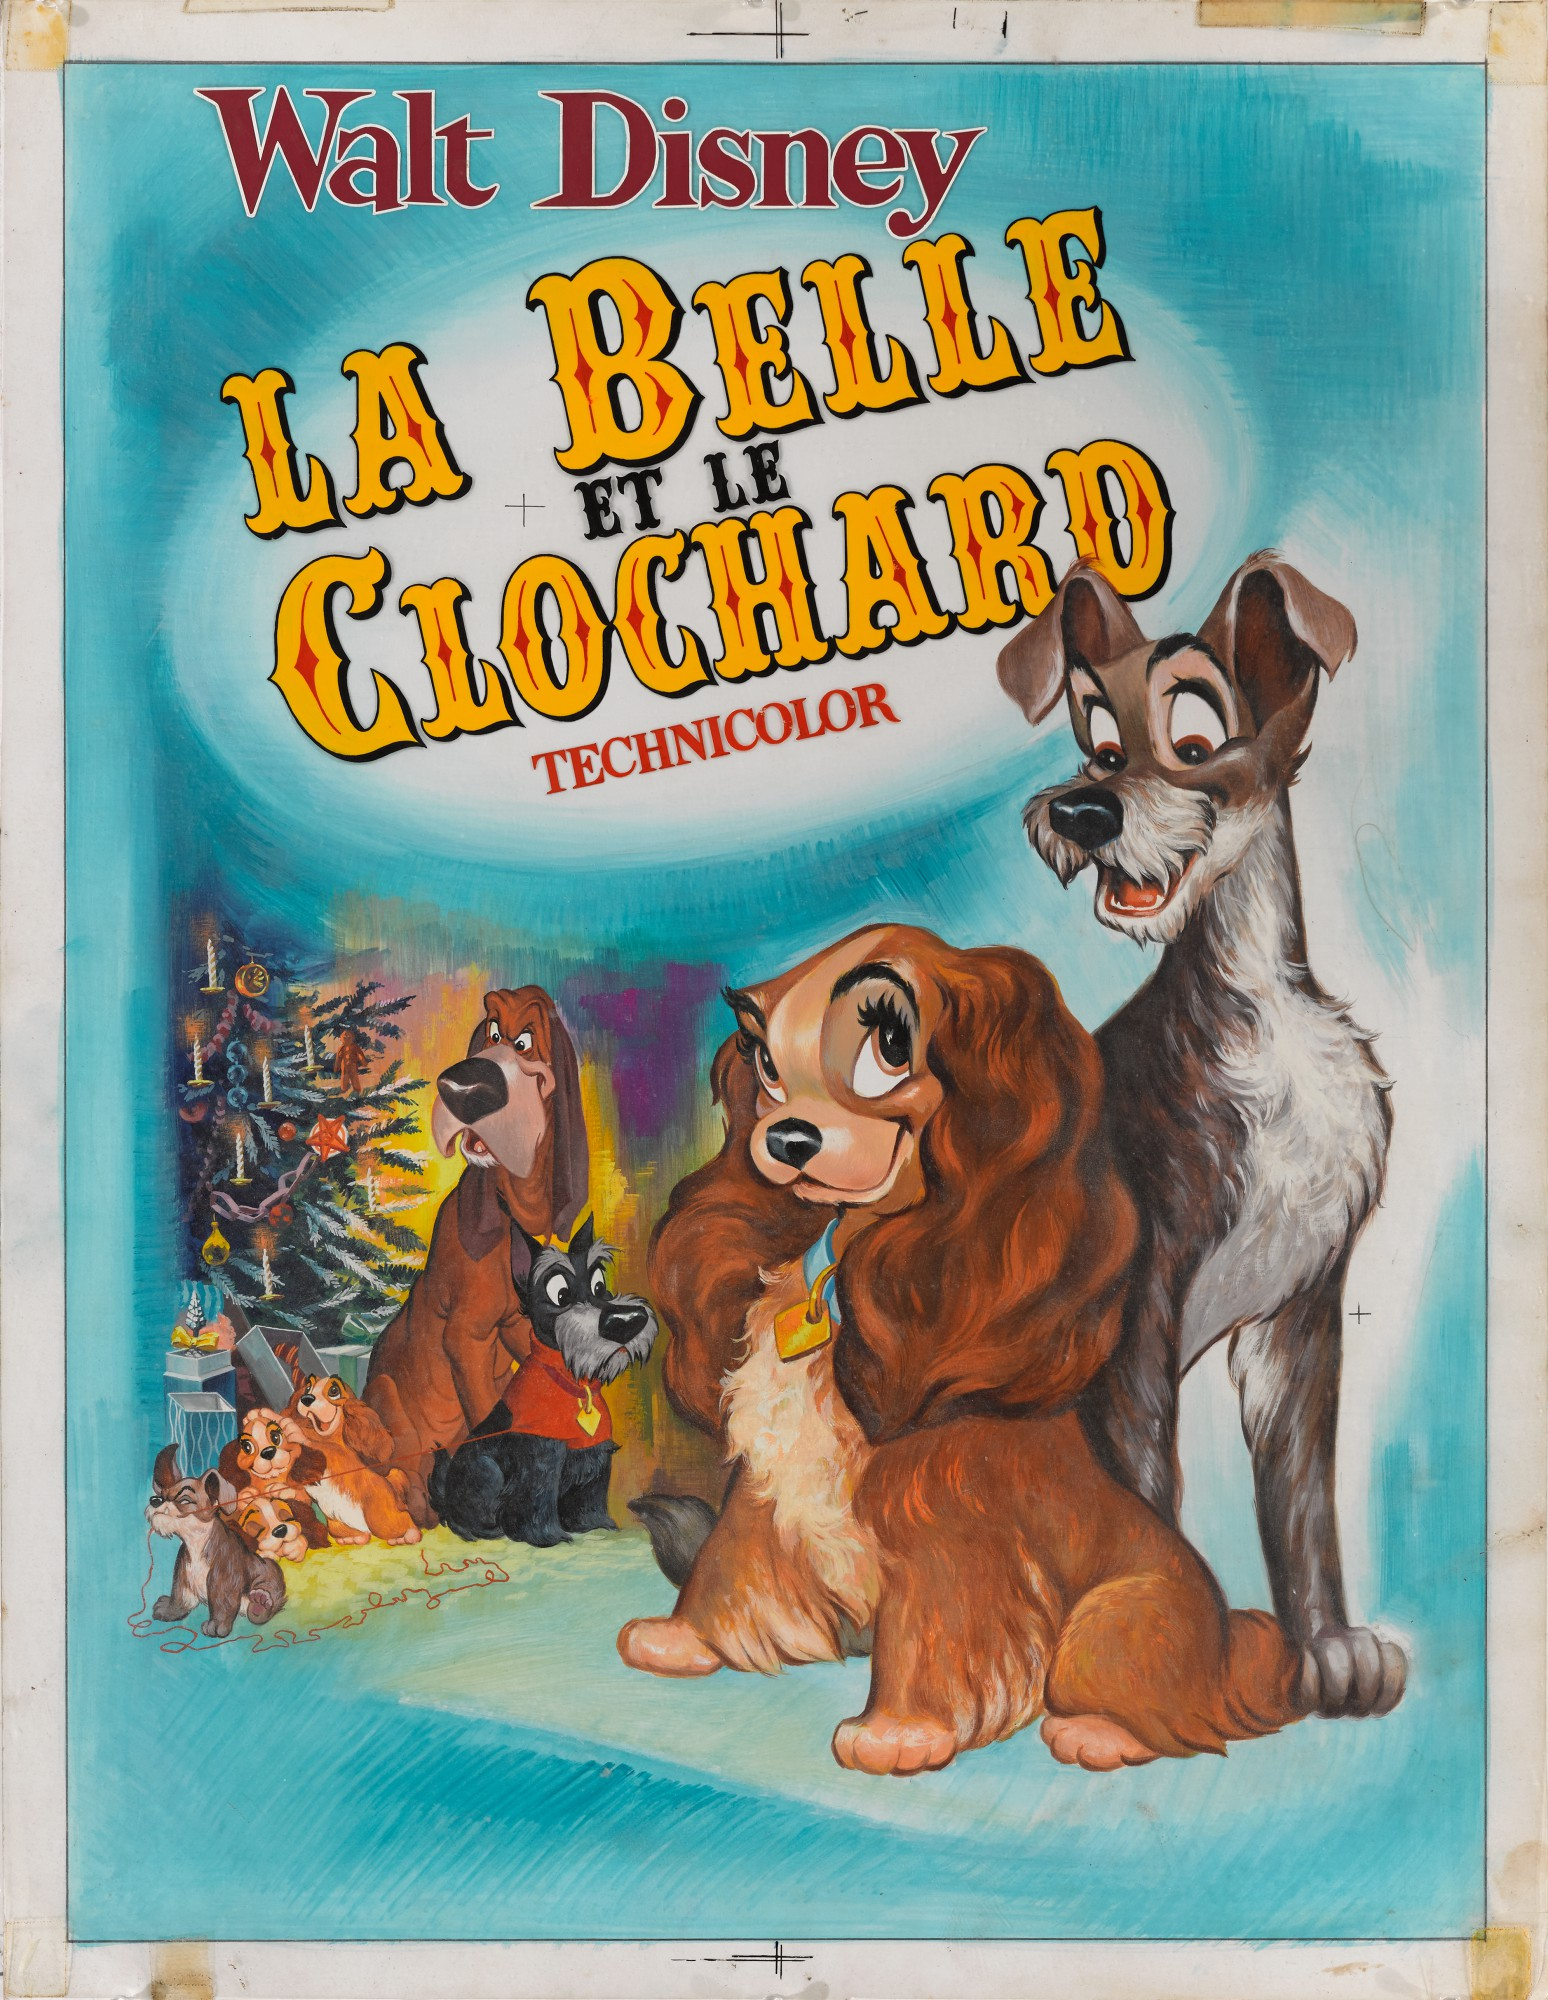 Lady And The Tramp La Belle Et Le Clochard 1955 Original Artwork French Original Film Posters Online Collectibles Sotheby S